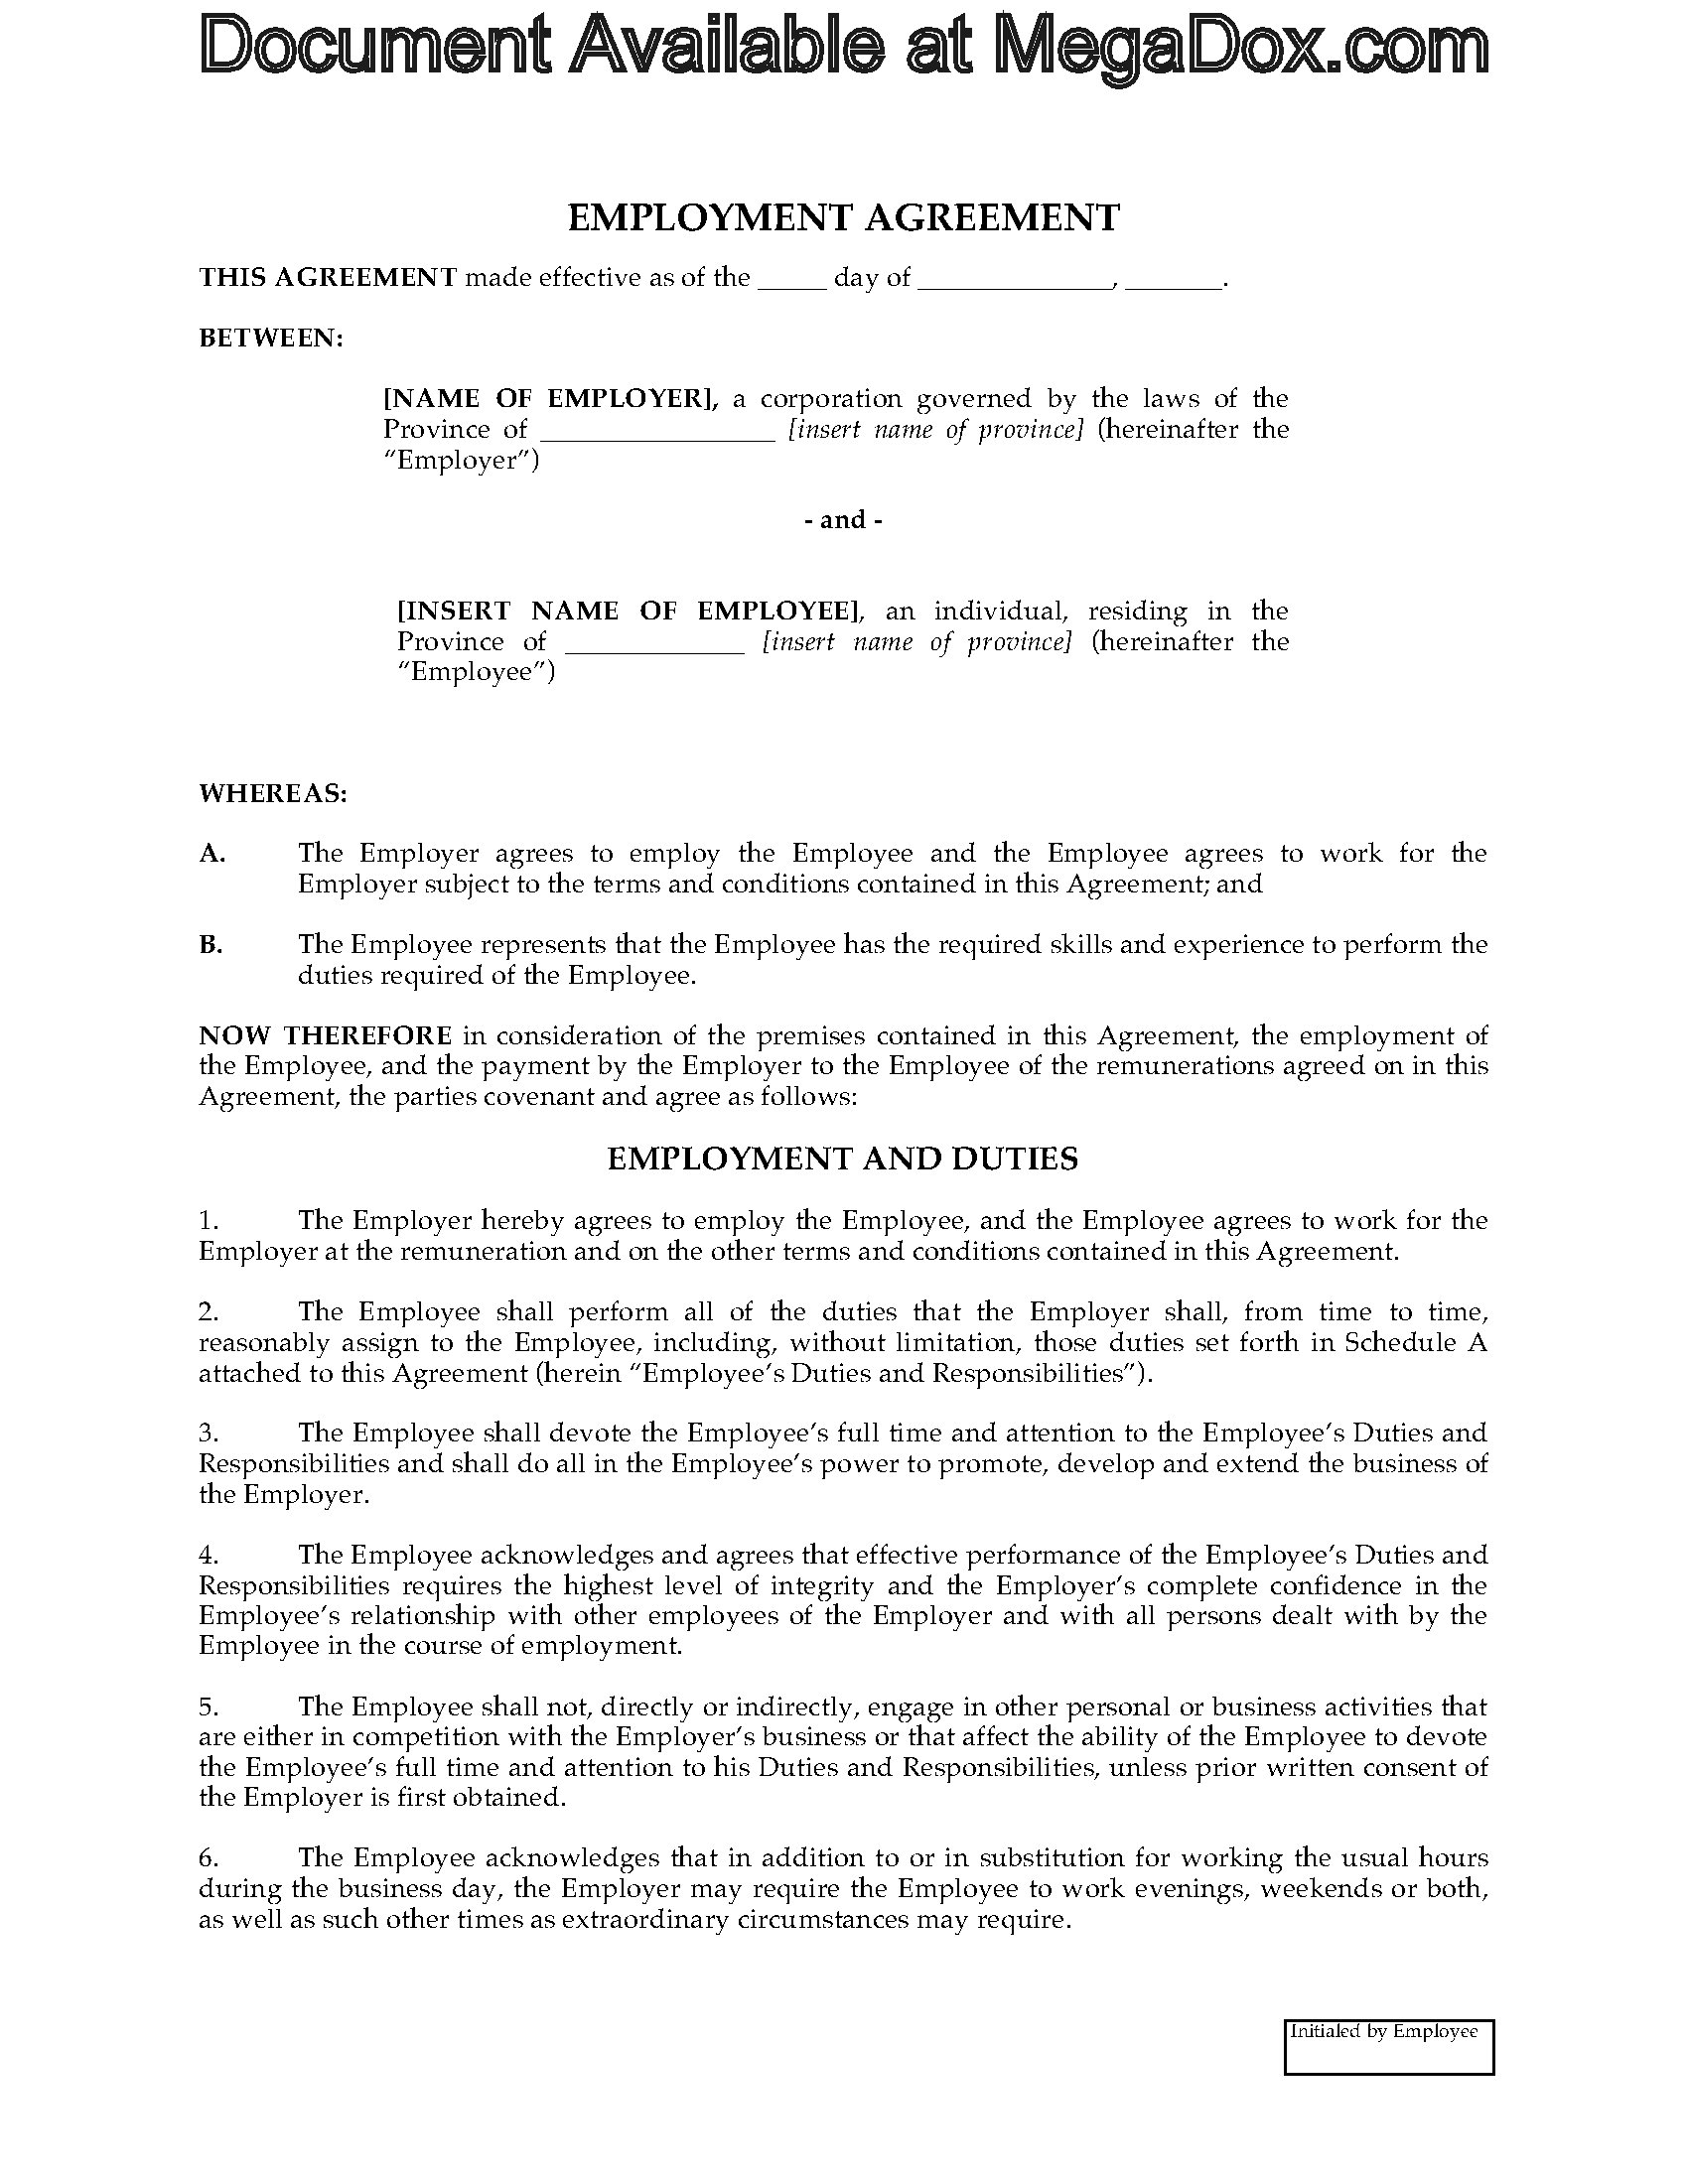 employers contract template - canada employment agreement template legal forms and